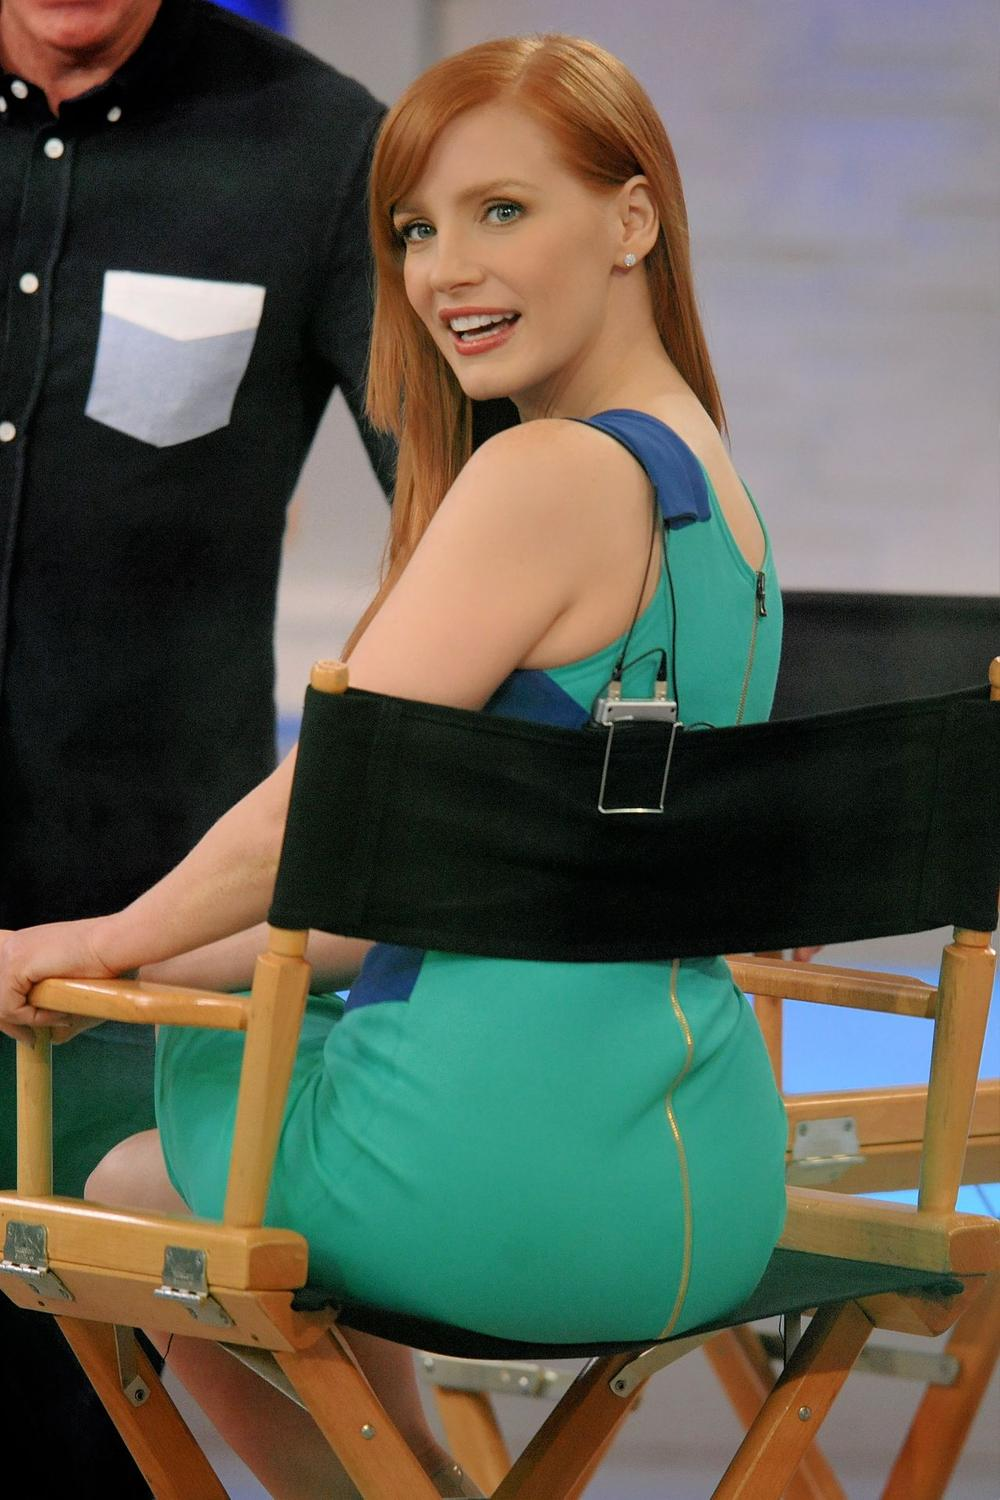 Jessica Chastain Booty